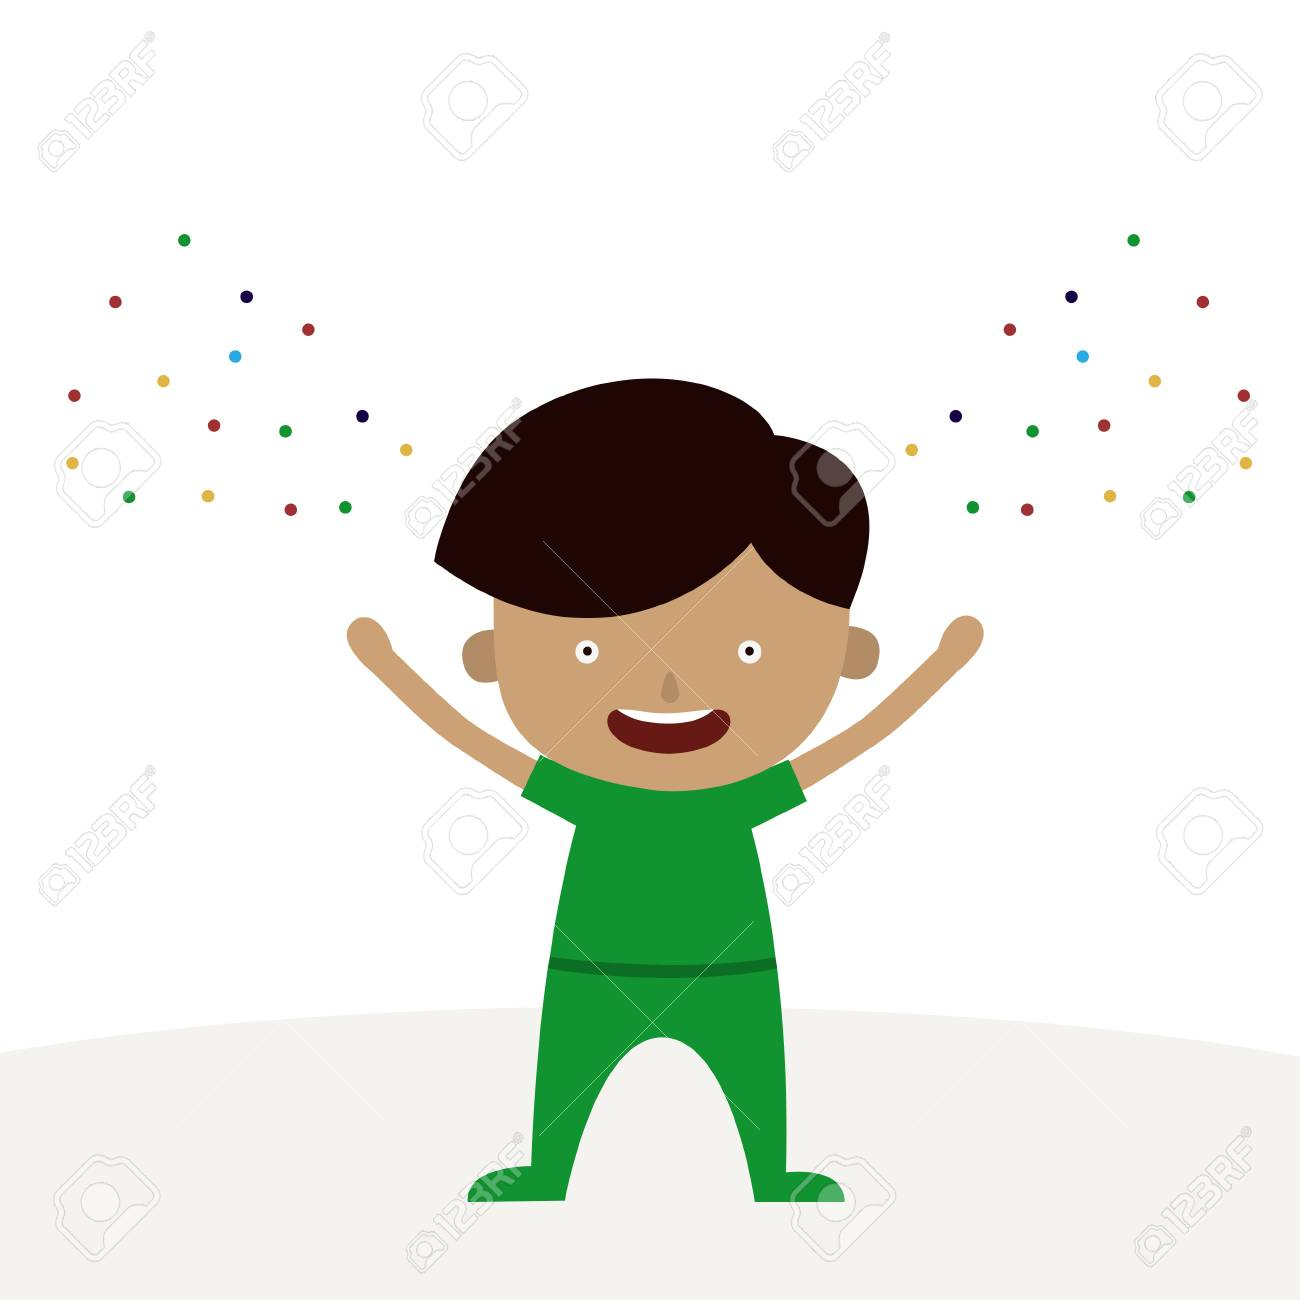 A Happy Boy Cartoon Character Is Happy Wednesday Theme Royalty Free